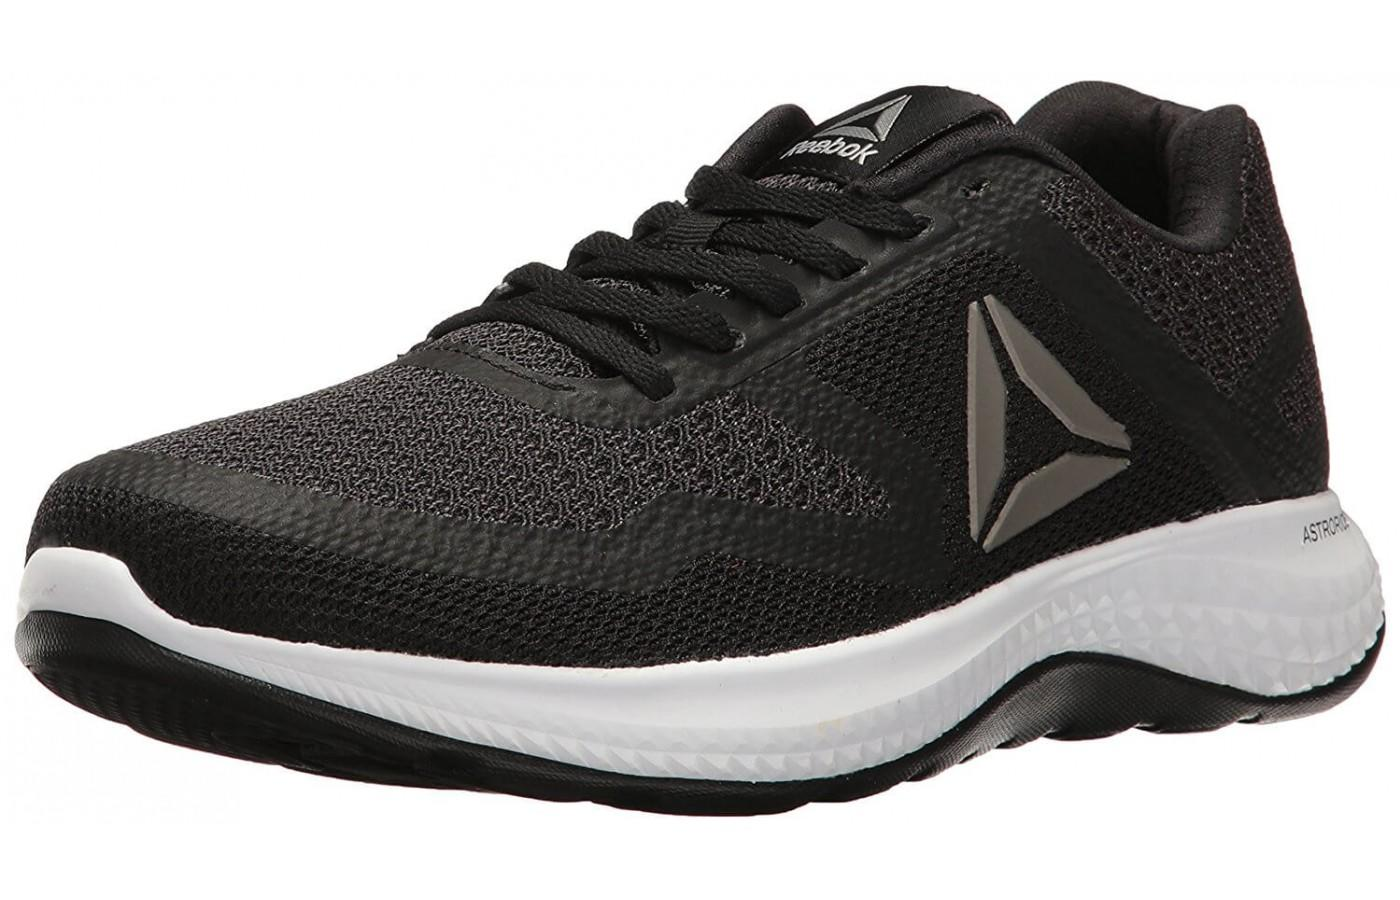 The Reebok Astroride 2D shown from the front/side